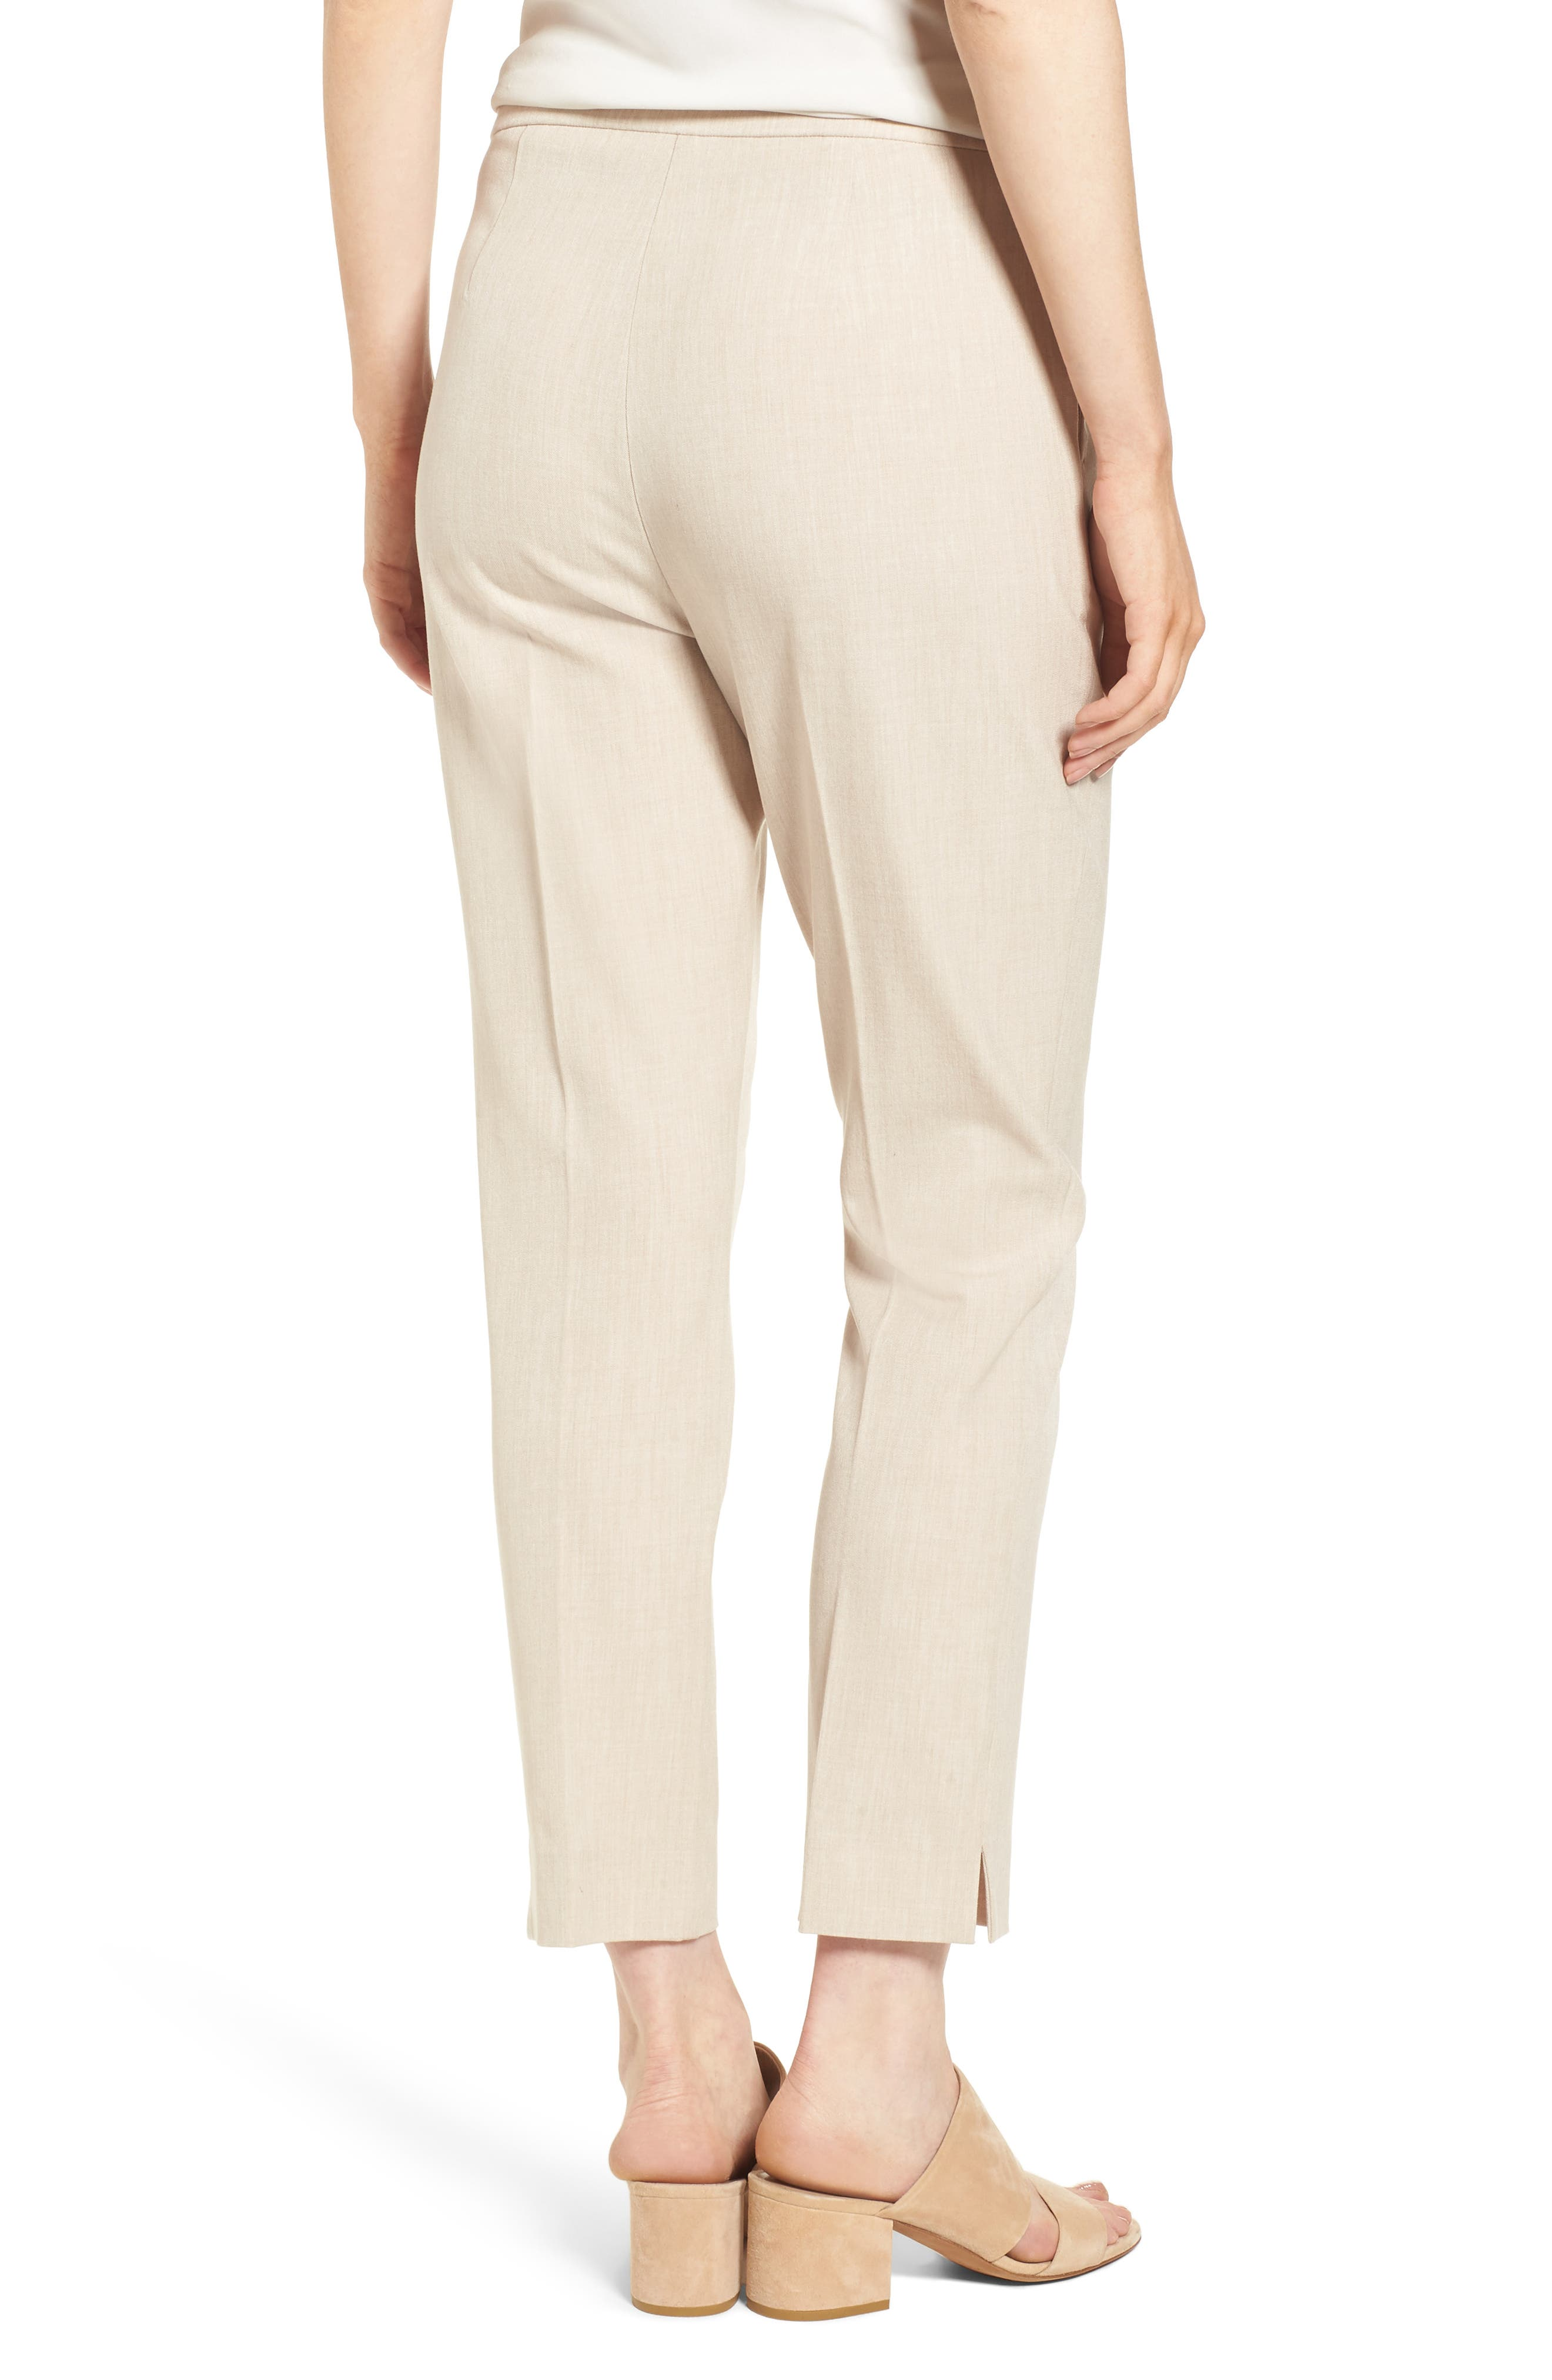 EILEEN FISHER,                             High Waist Tapered Pants,                             Alternate thumbnail 2, color,                             291